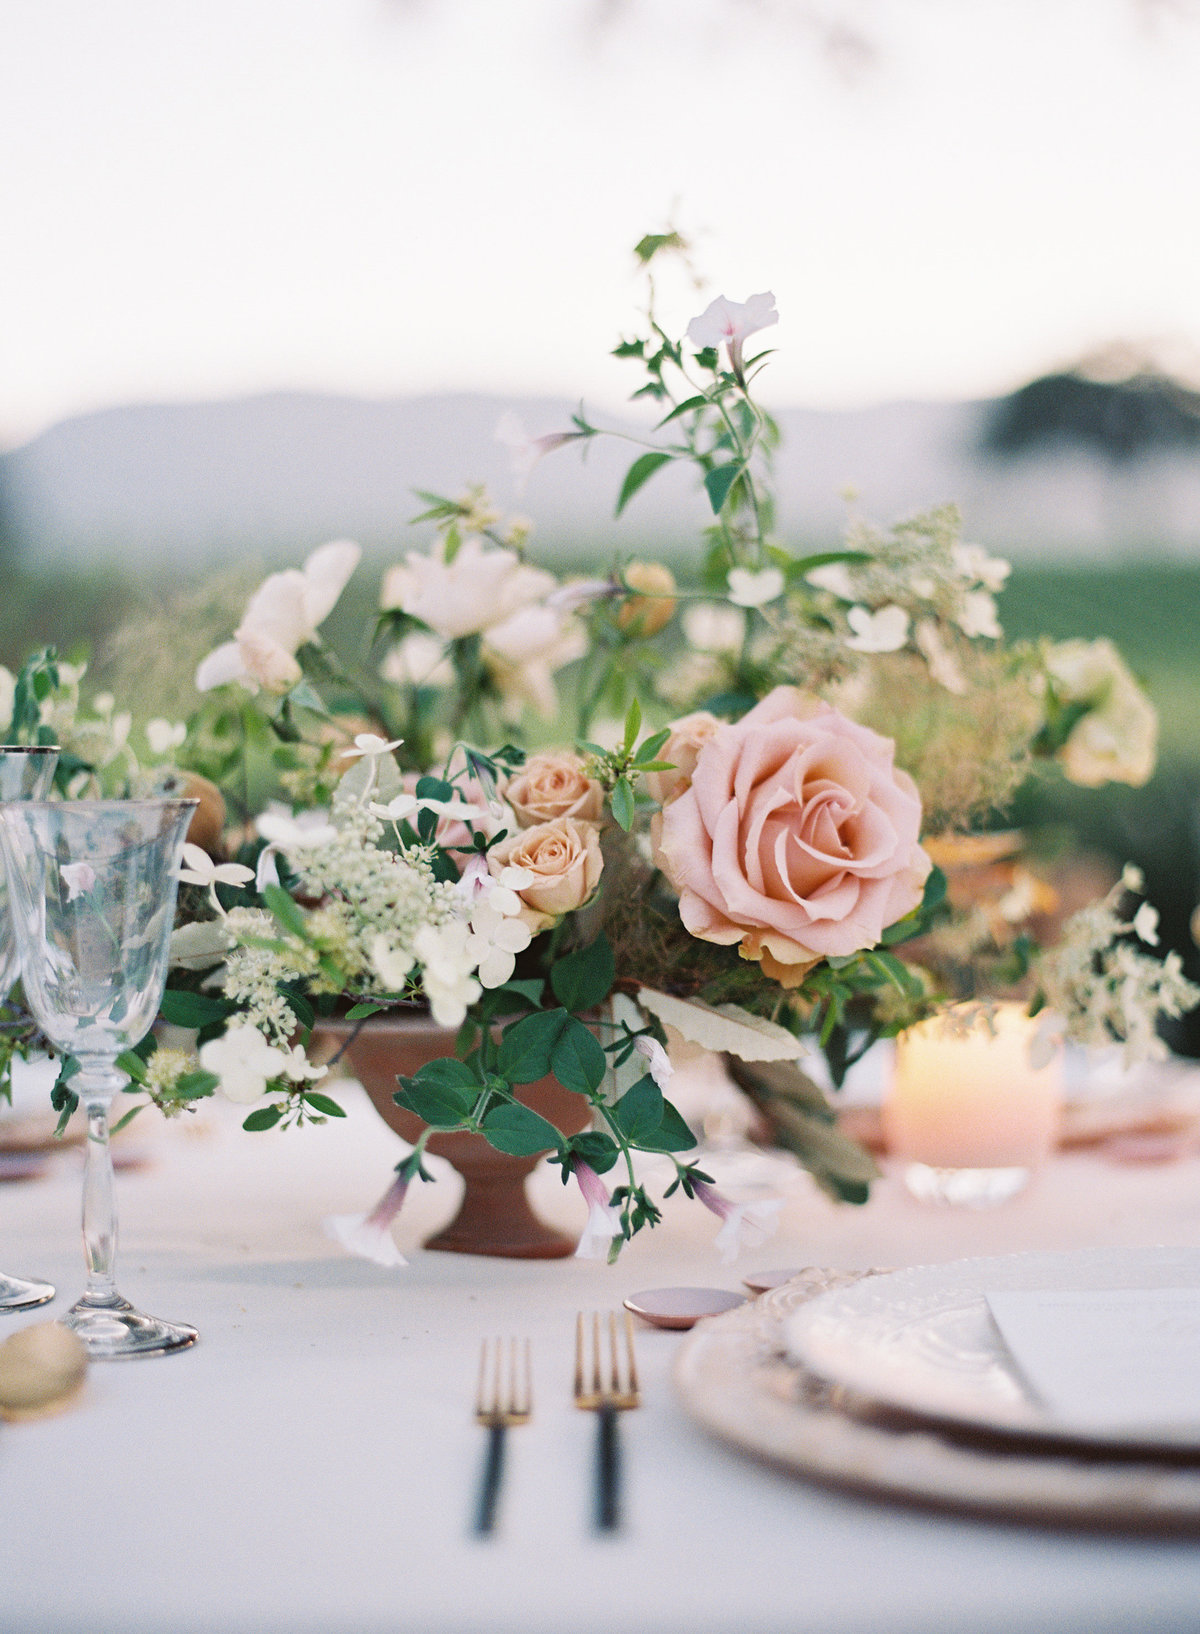 Flowers for wedding by Jenny Schneider Events in Napa Valley, California. Photo by Eric Kelley Photography.